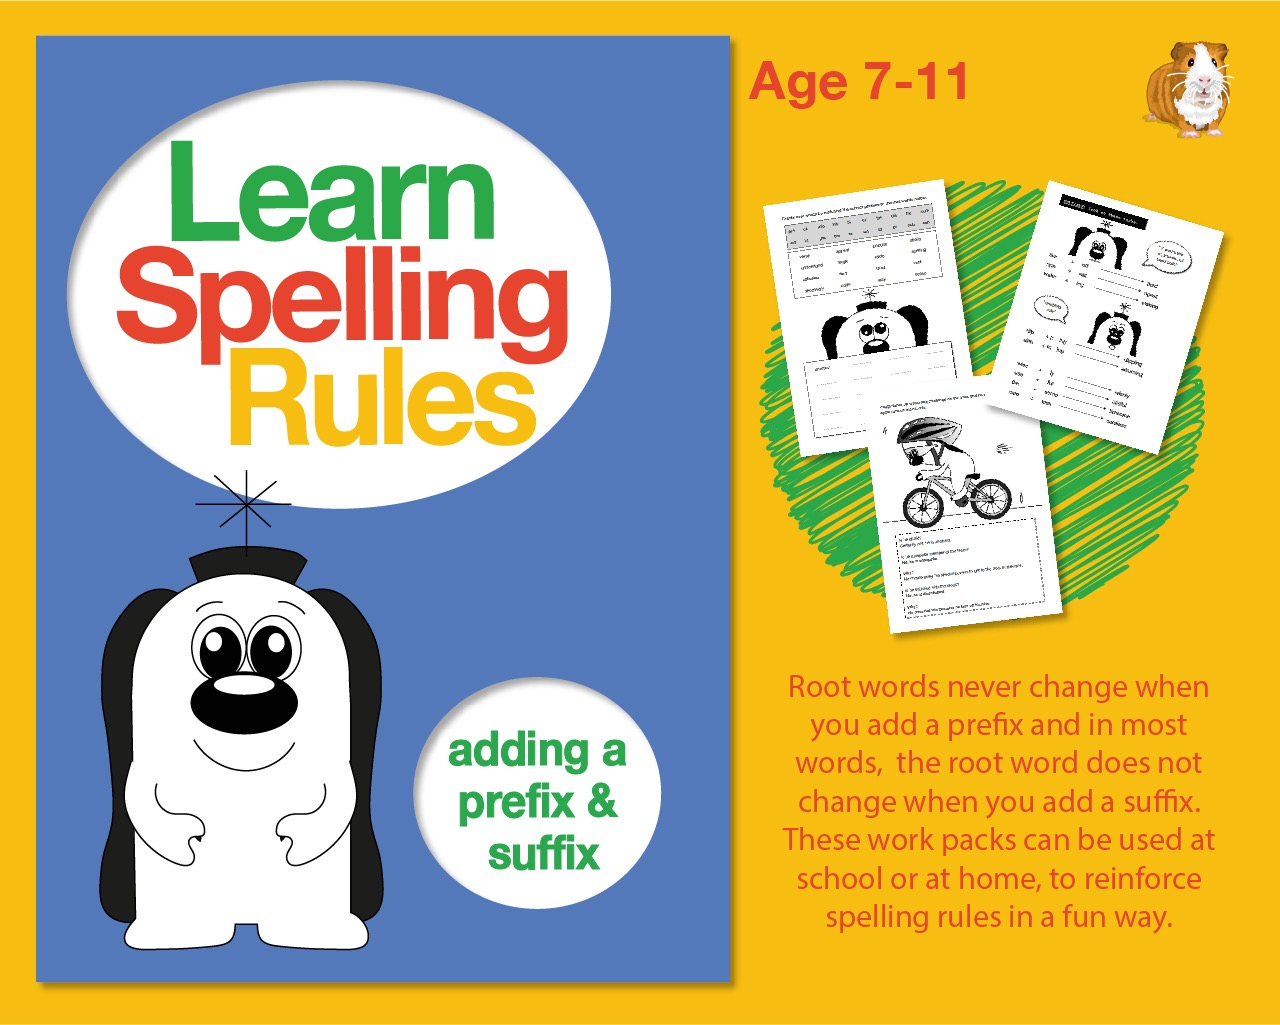 Learn Spelling Rules: Adding A Prefix And A Suffix